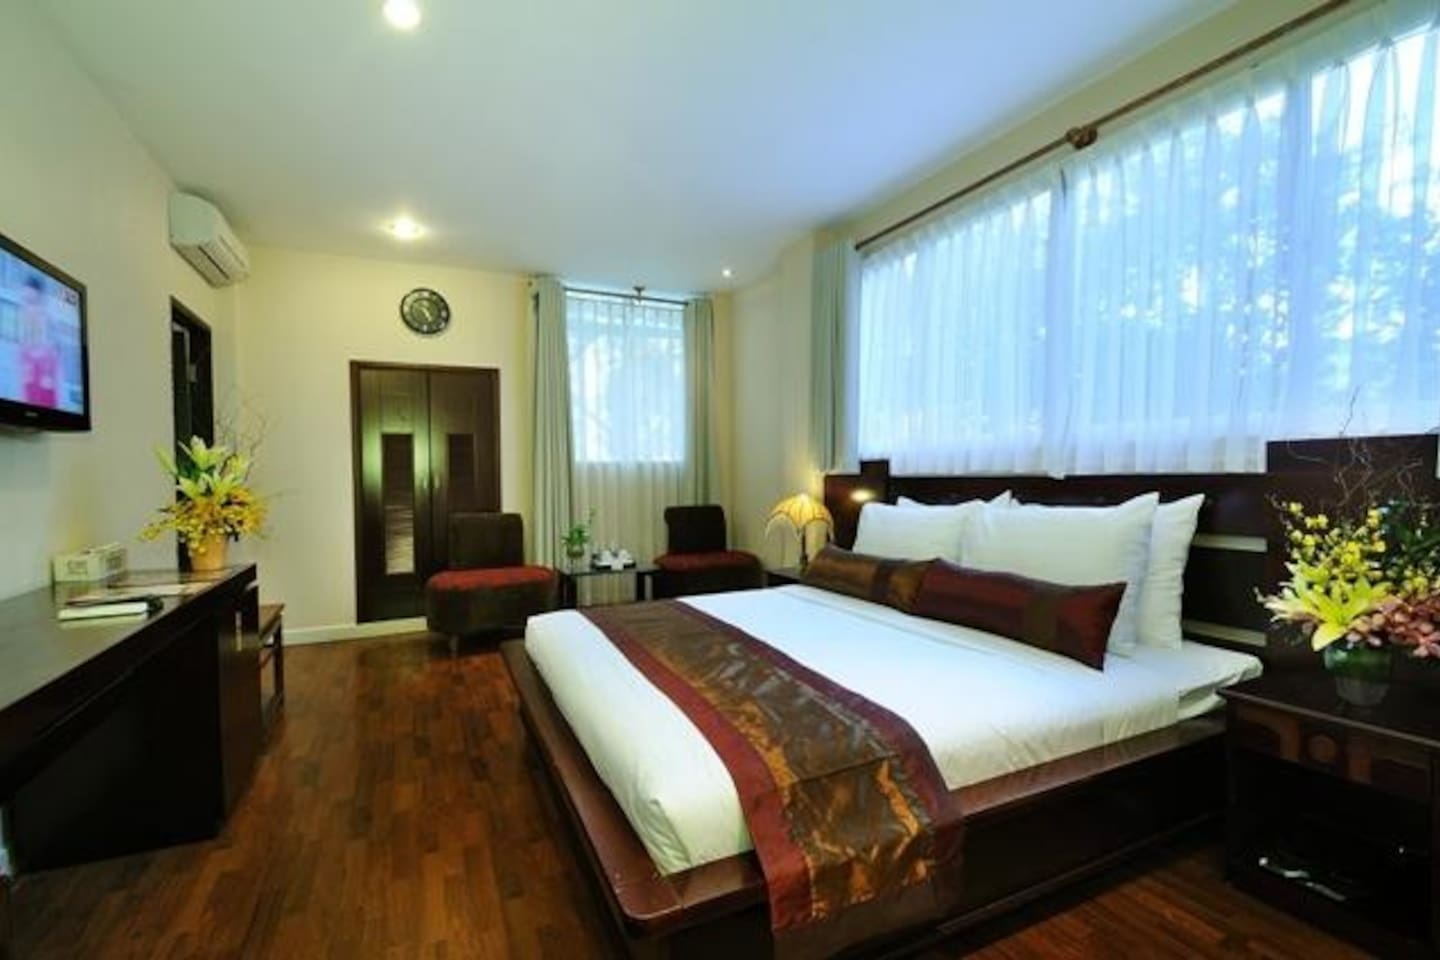 Deluxe room near Ben Thanh Market